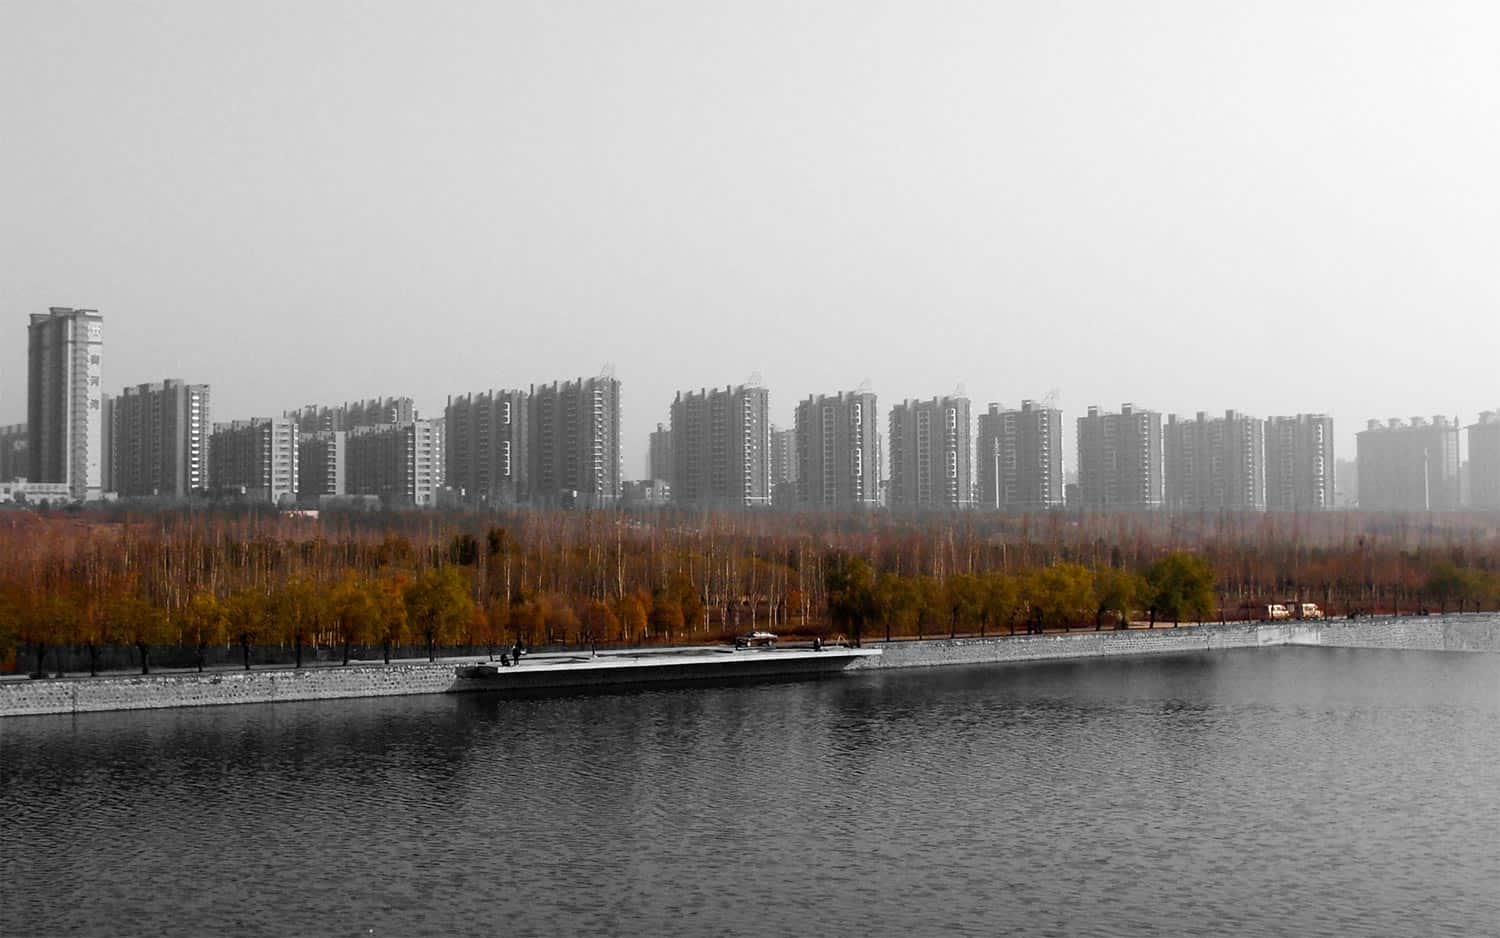 The Medium-Sized China's Cities Project - European Research